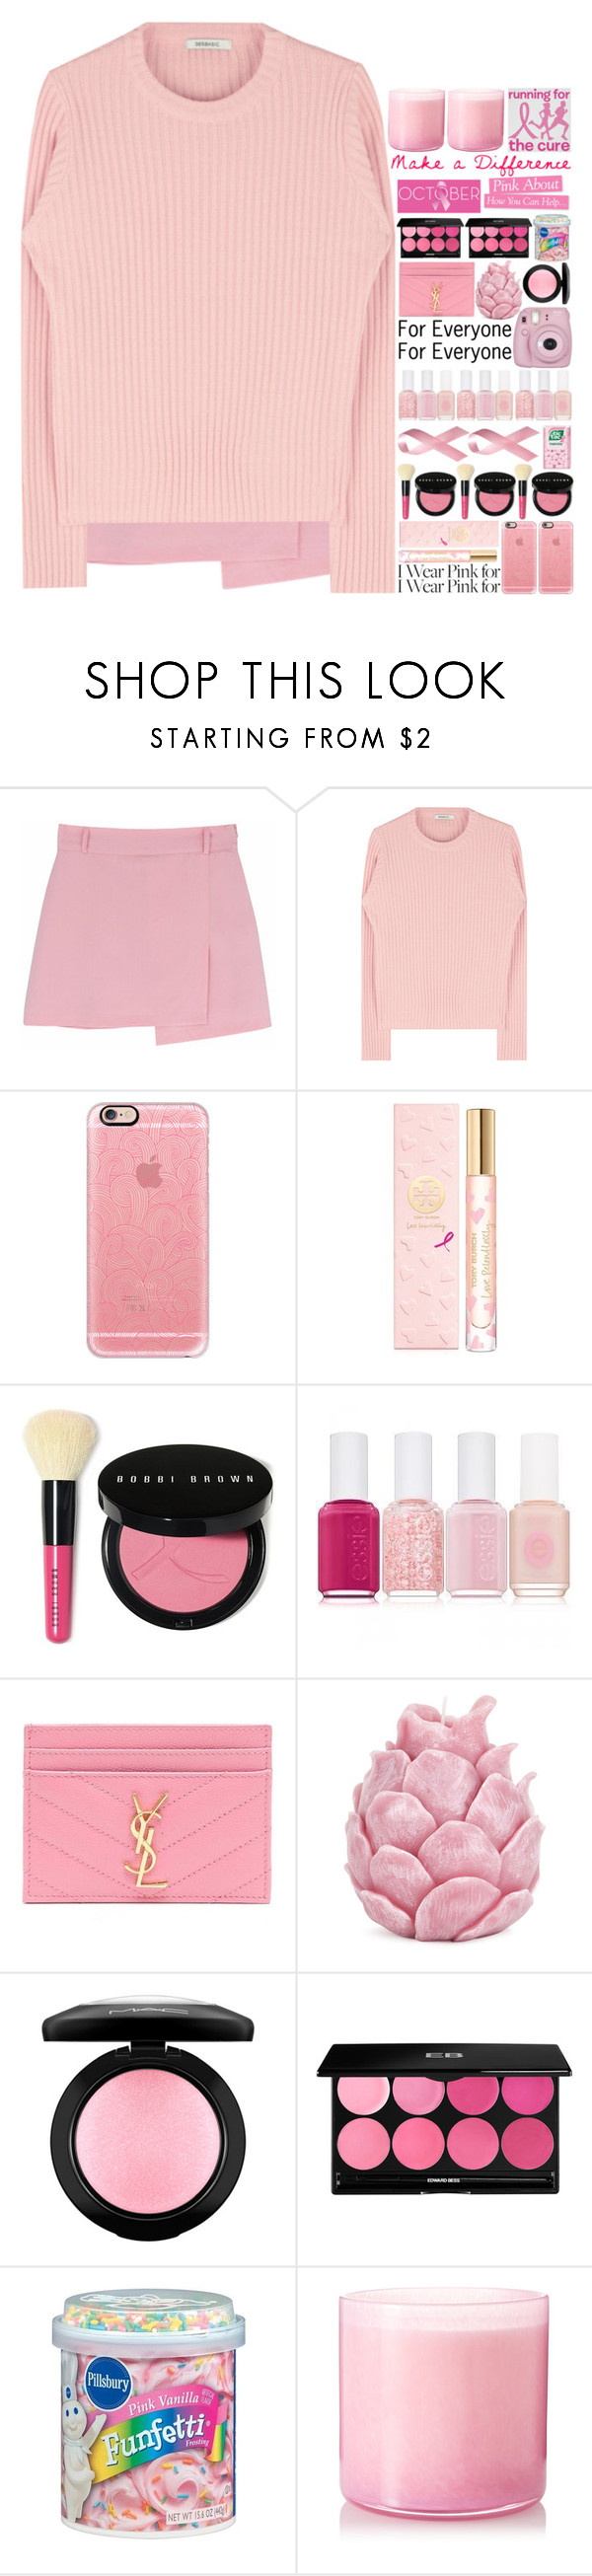 """Who Do You Wear Pink For?"" by tiffanyelinor ❤ liked on Polyvore featuring Casetify, Tory Burch, Bobbi Brown Cosmetics, Essie, Fujifilm, Yves Saint Laurent, Zara Home, MAC Cosmetics, Edward Bess and Pink Vanilla"